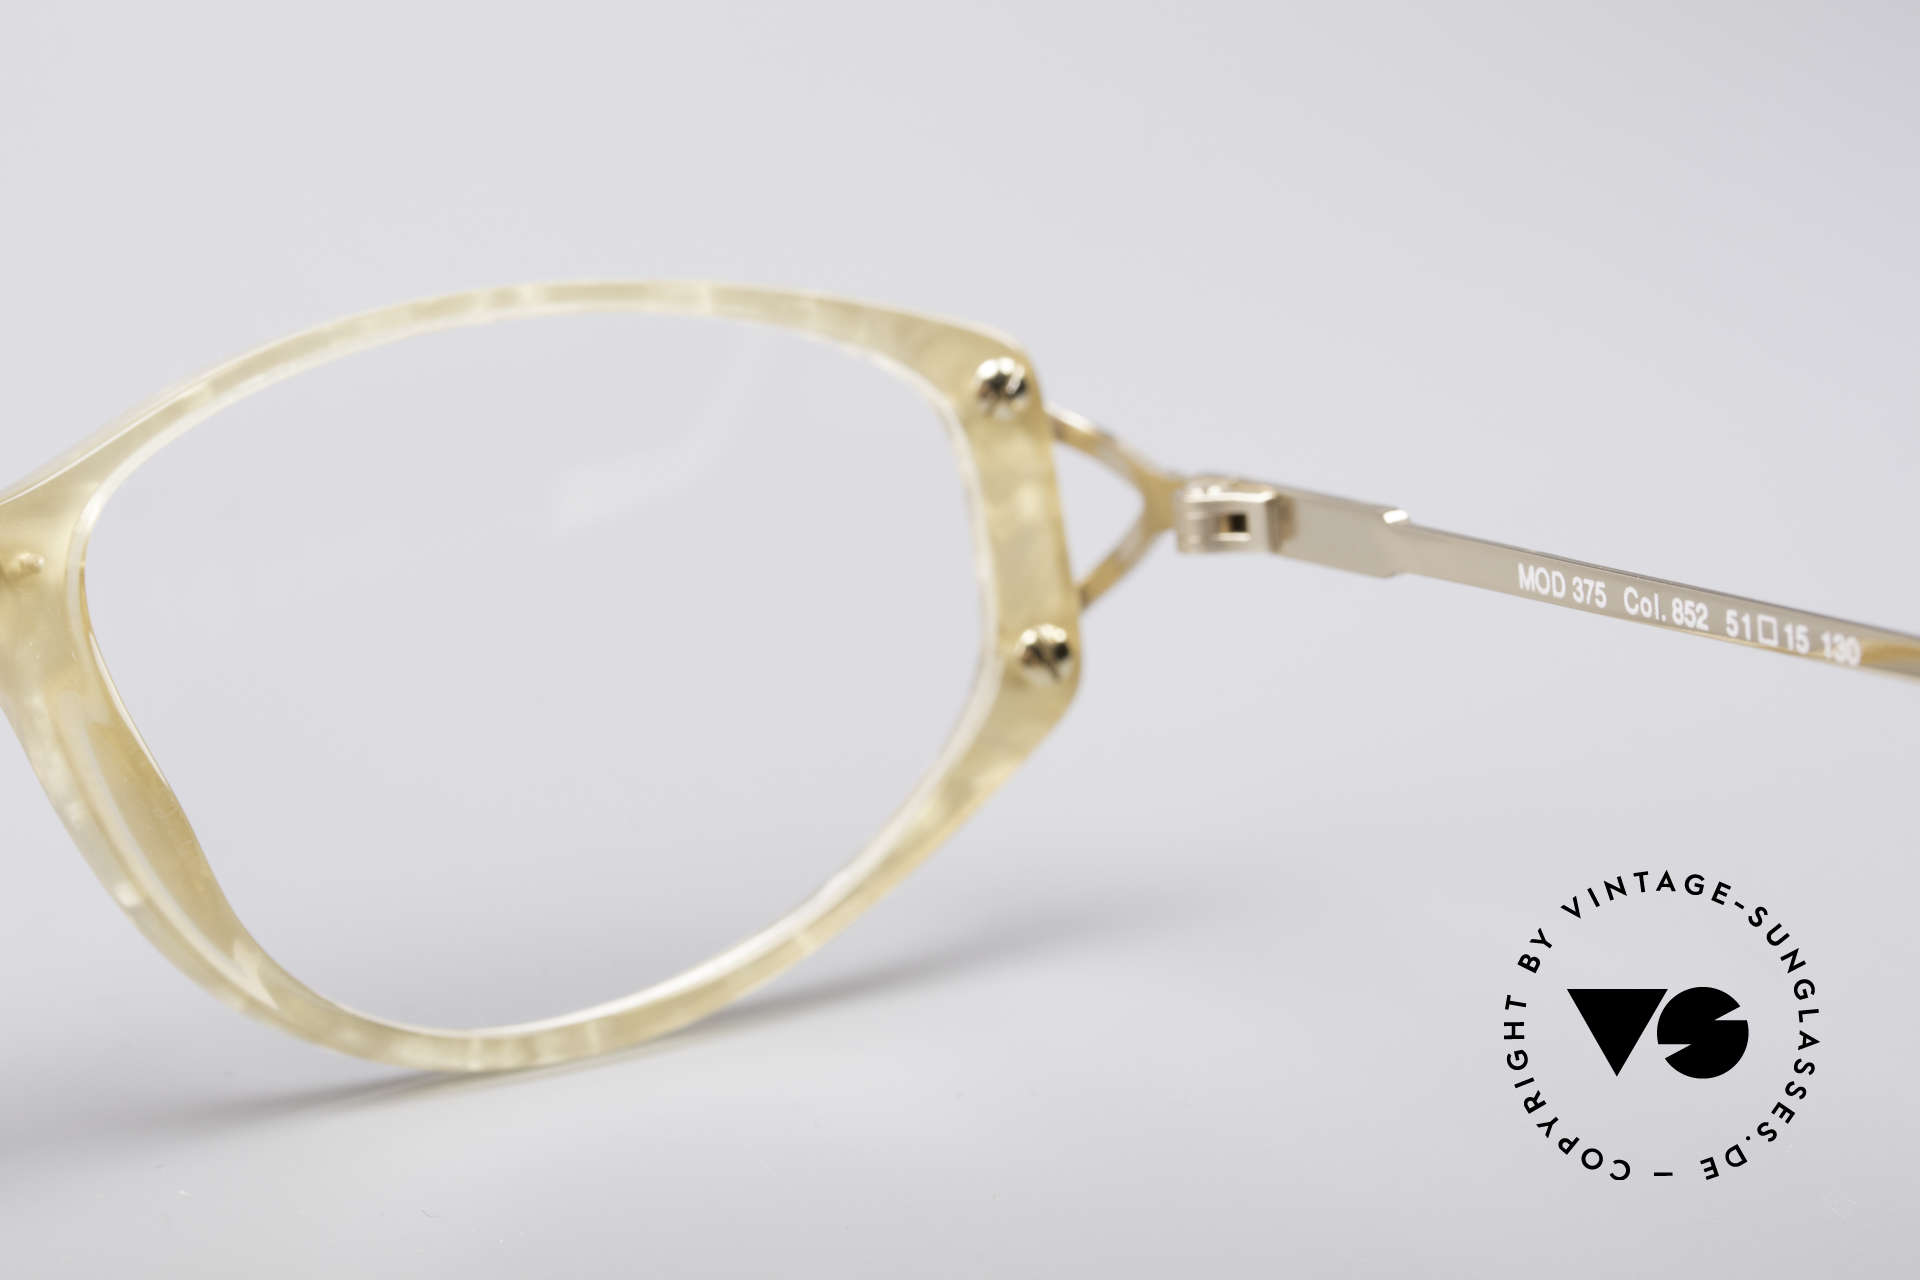 Cazal 375 Vintage Pearl Glasses, Size: small, Made for Women